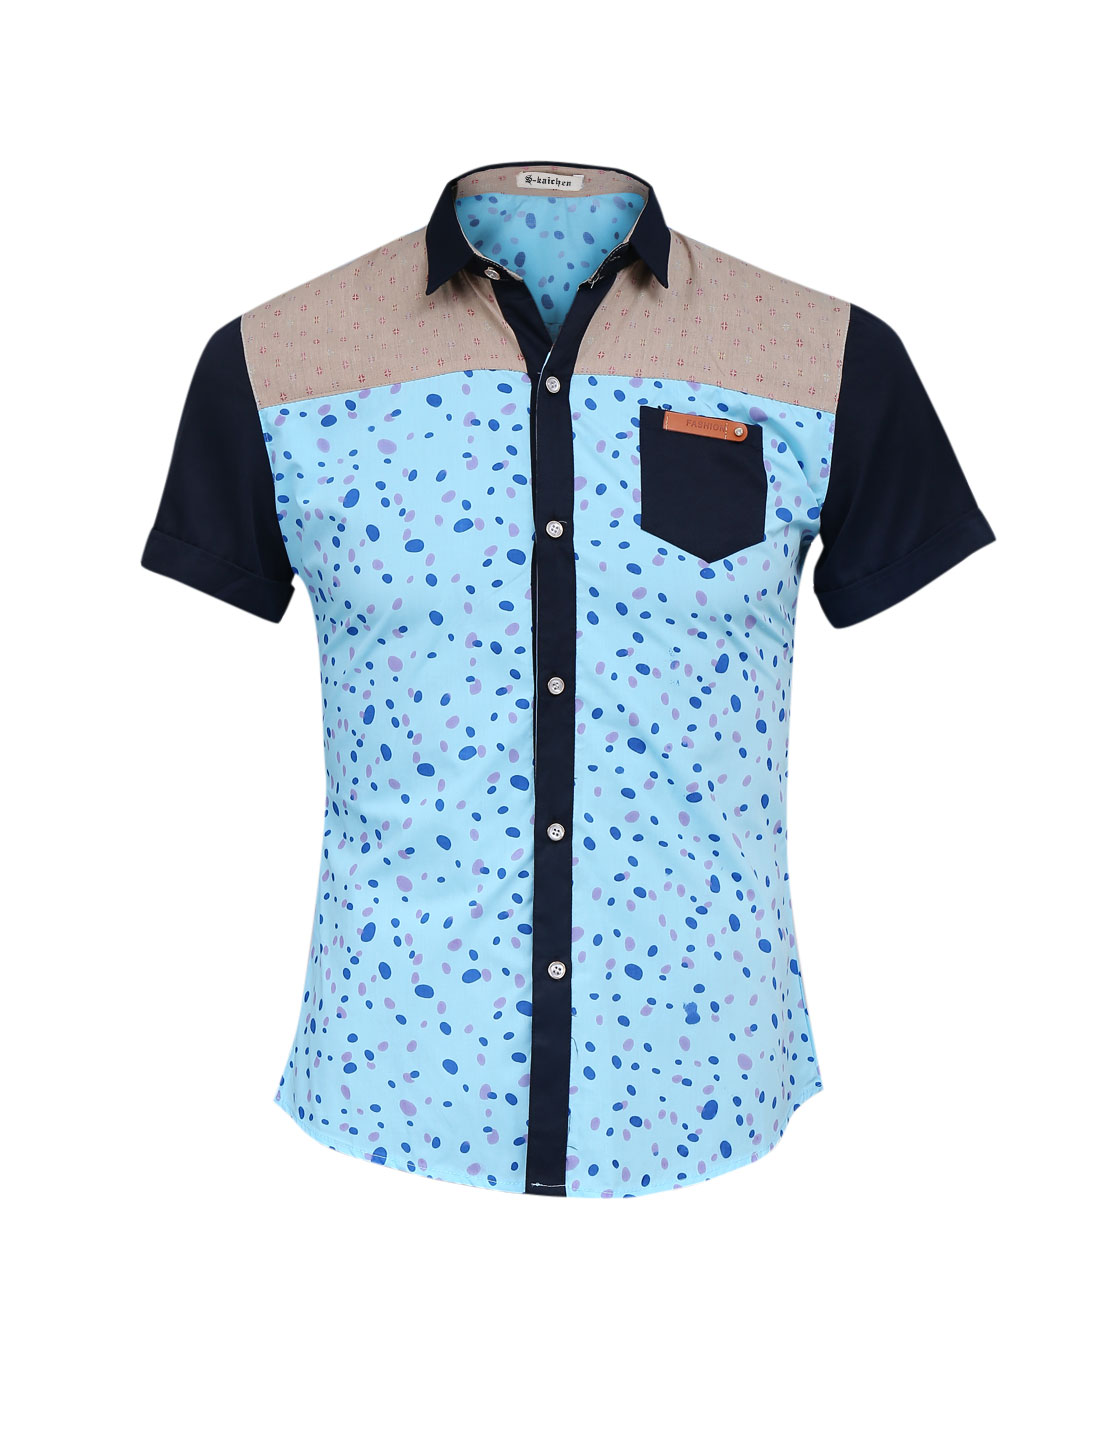 Men Spots Pattern Point Collar Short Sleeve Casual Shirt Sky Blue S